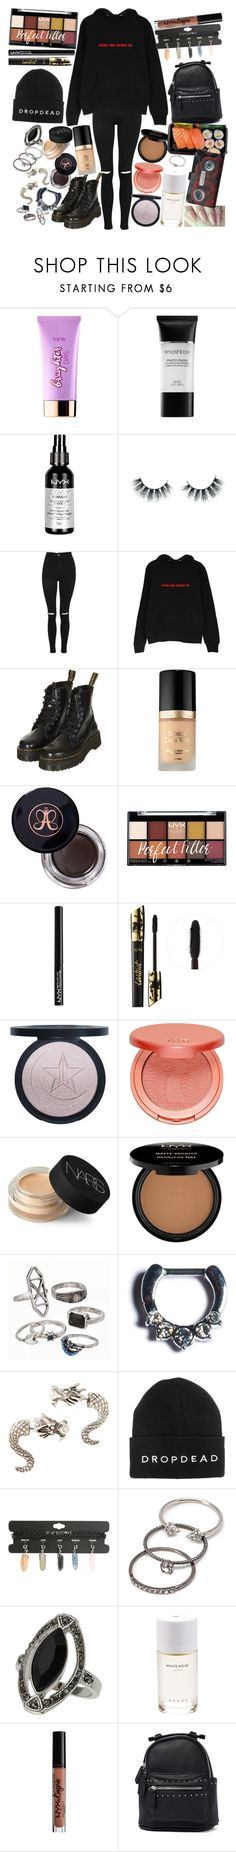 """I, I'm still here, though I'm not sure what it's for anymore. I, I feel lost, and I'm not sure if I'm heard by anyone."" by thelyricsmatter ❤ liked on Polyvore featuring tarte, Smashbox, NYX, Unicorn Lashes, Topshop, Too Faced Cosmetics, Anastasia Beverly Hills, NARS Cosmetics, Mudd and Halftone Bodyworks"